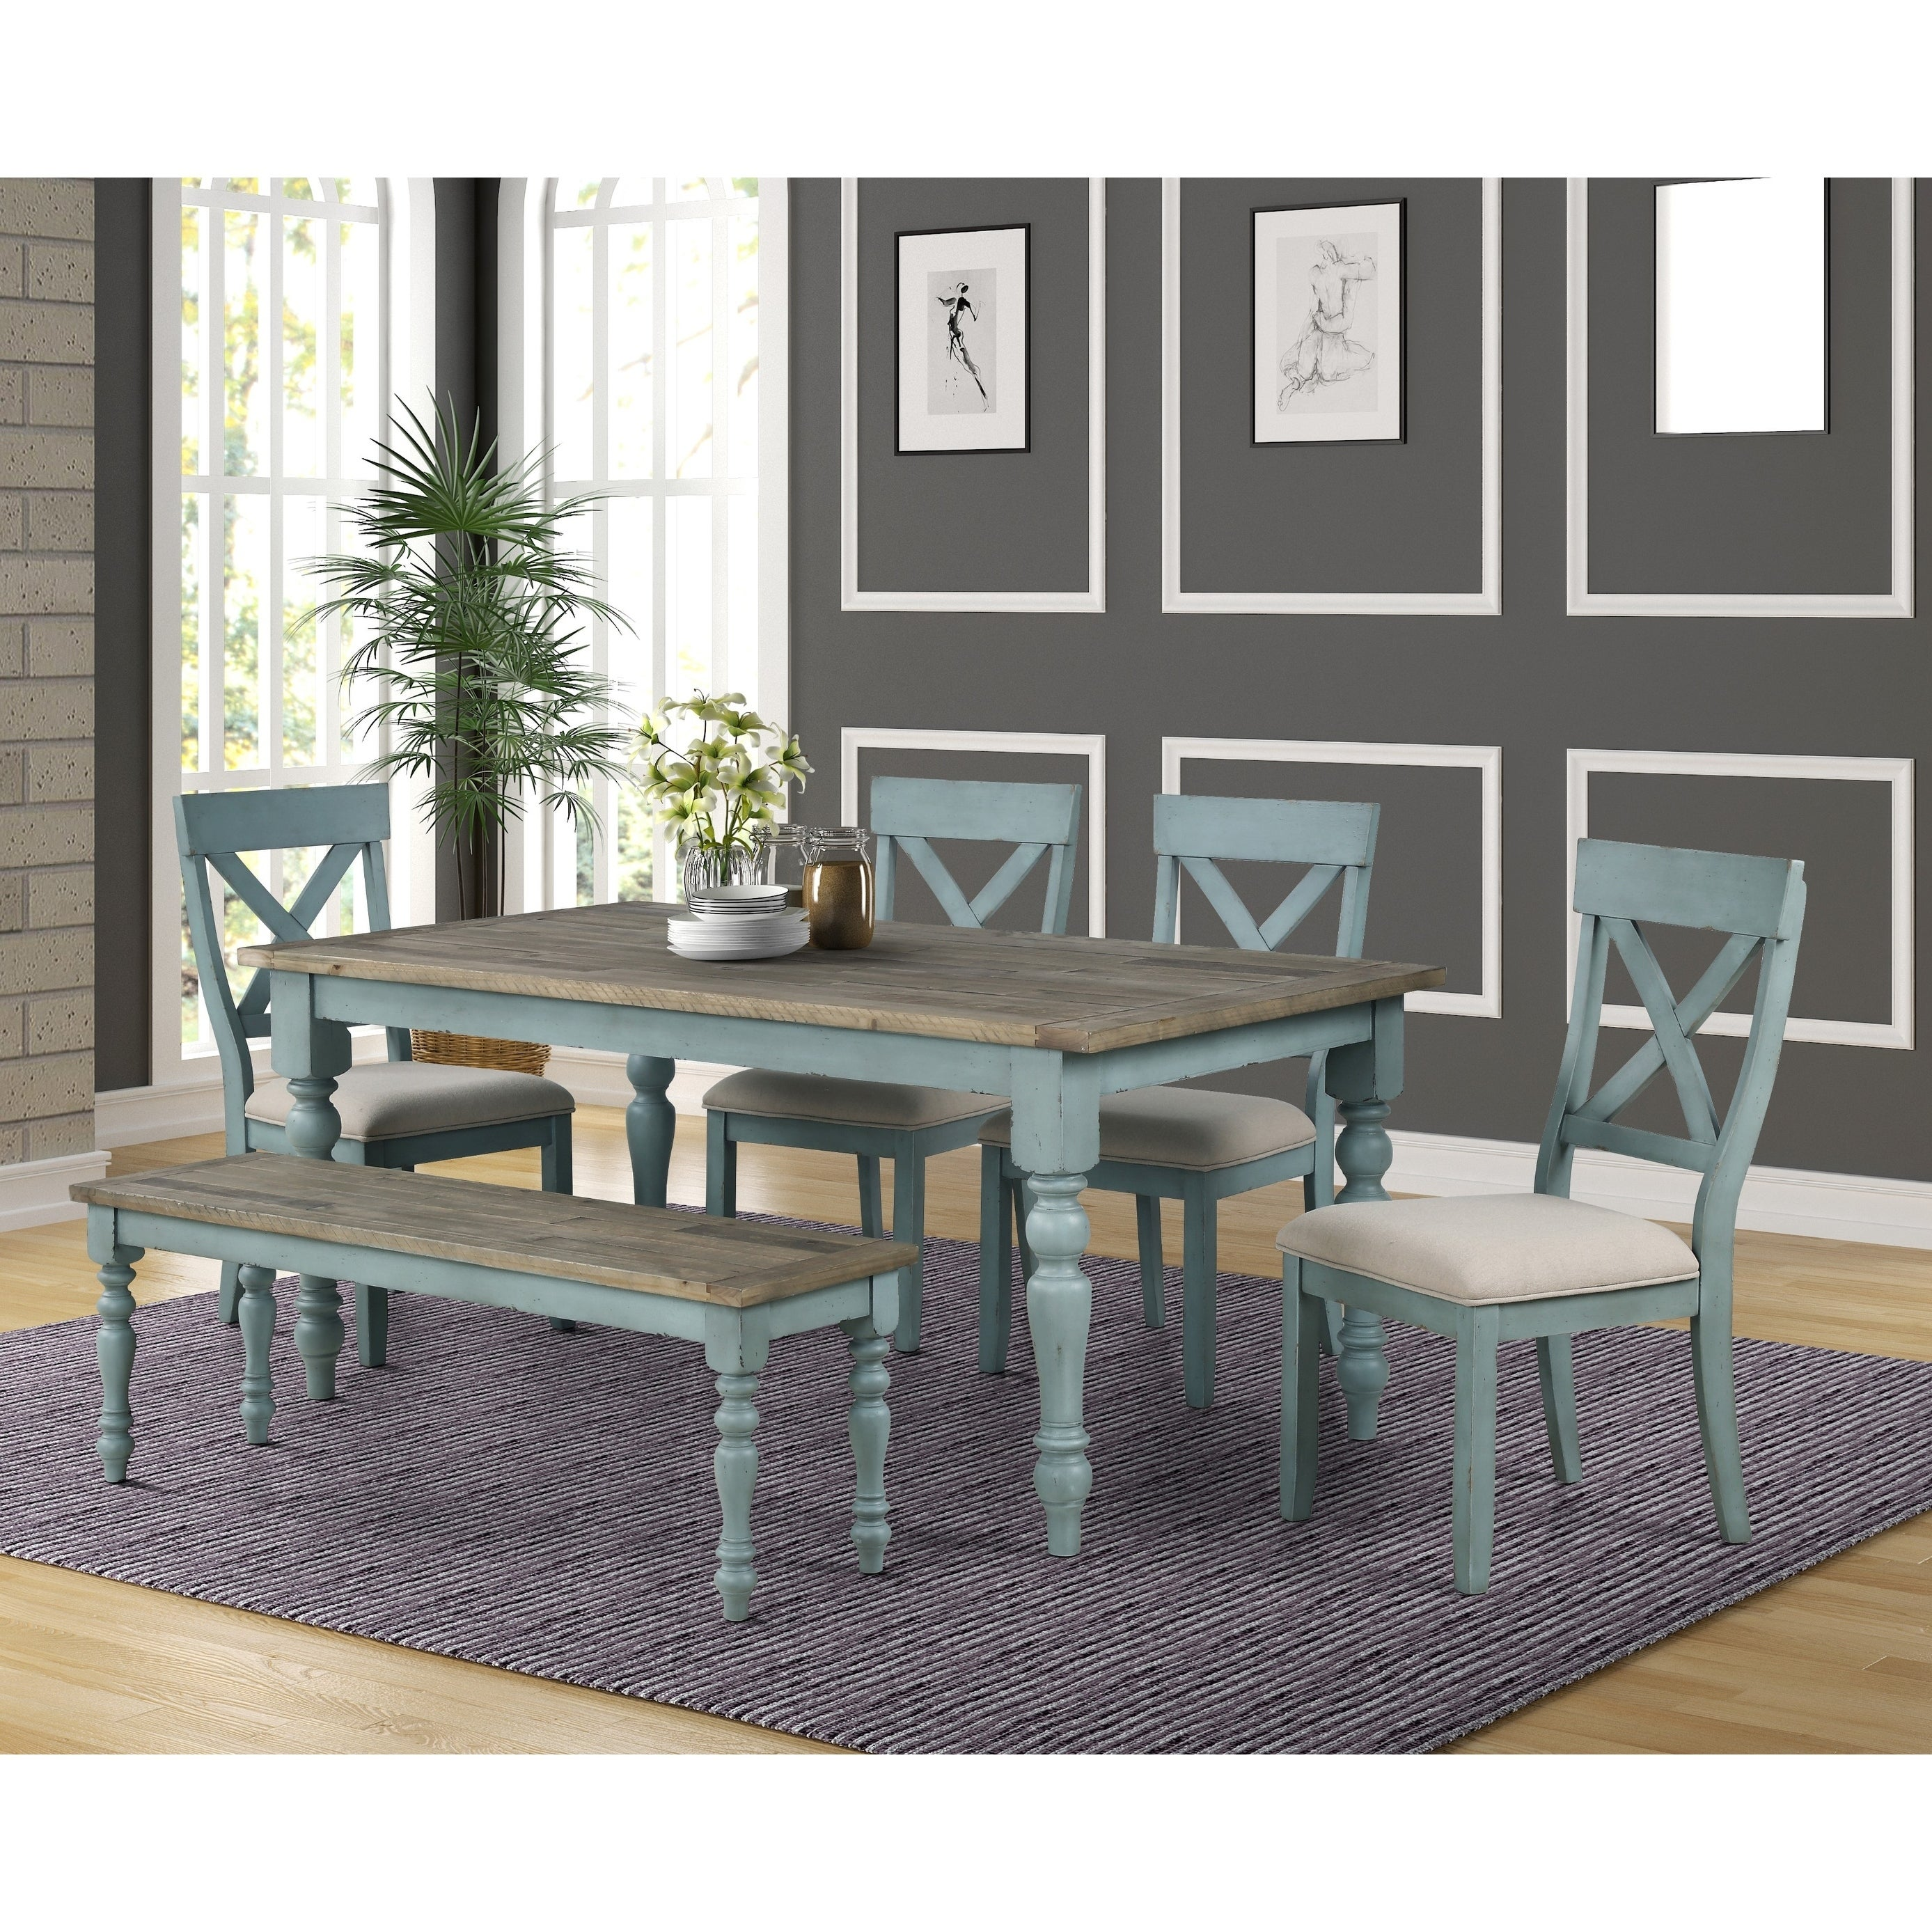 Dining Table Set With Cross Back Chairs